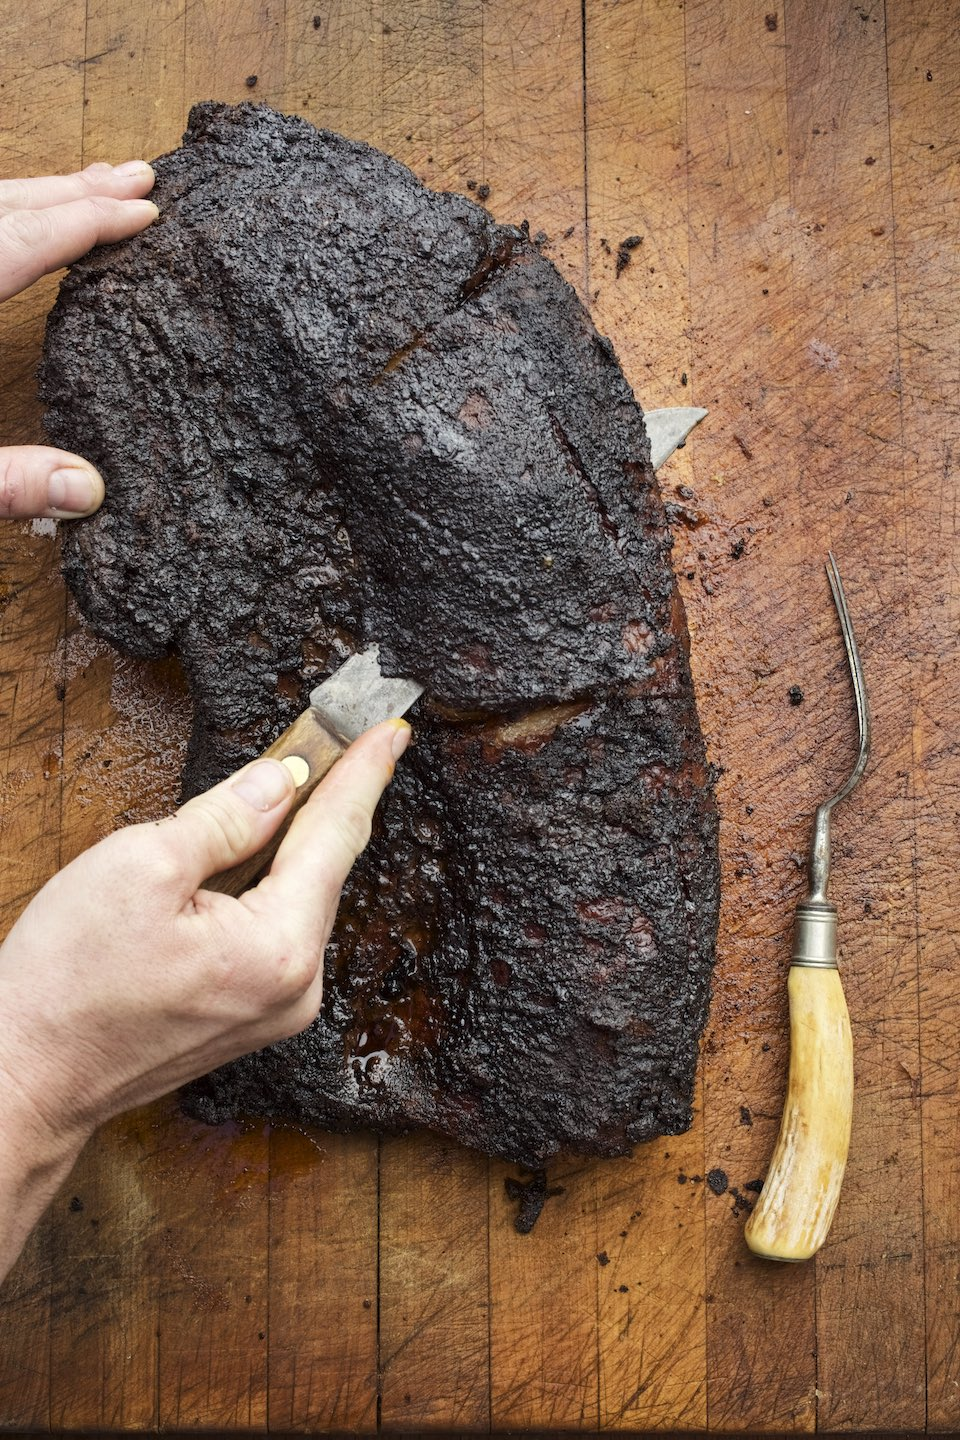 Jody Horton Photography - Barbecued brisket cut on a wood board.